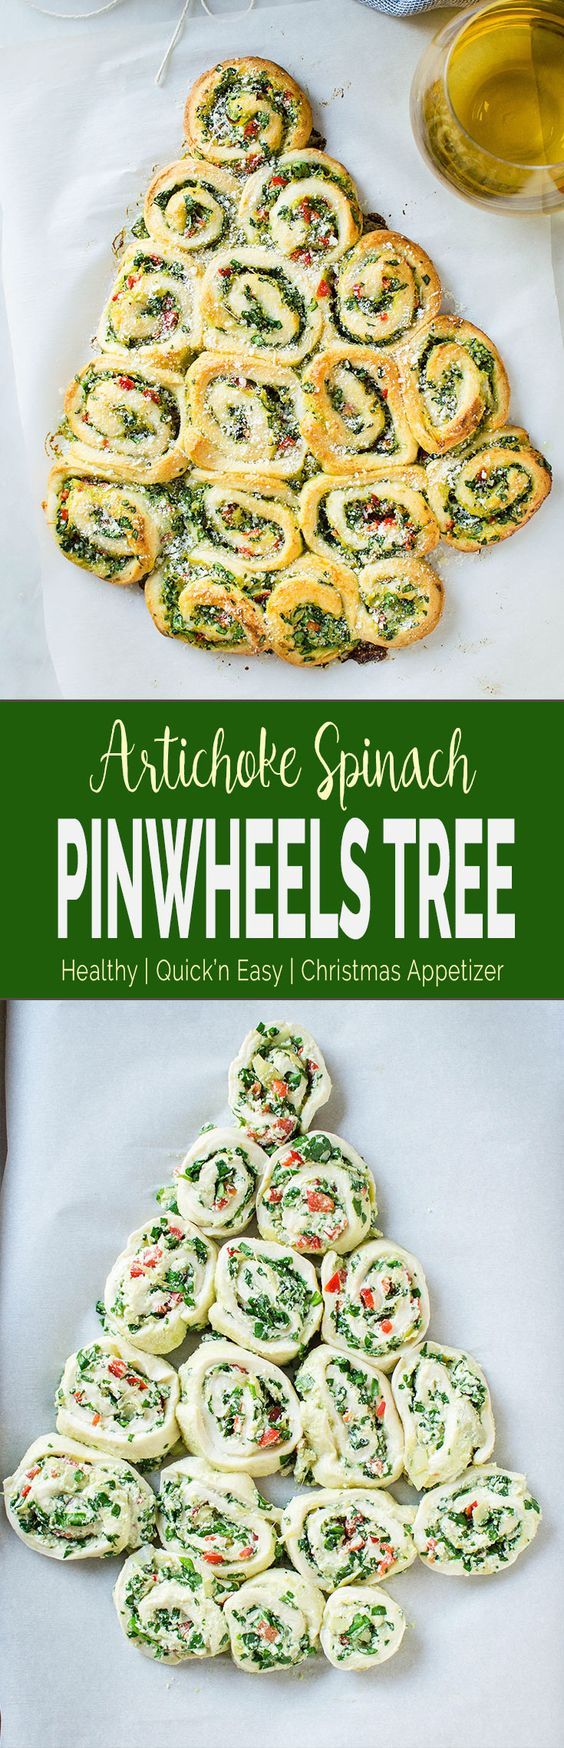 Amazing Recipes Chipotle Cheddar Avocado Roll Quick And Easy Artichoke Spinach Pinwheels Christmas Tree